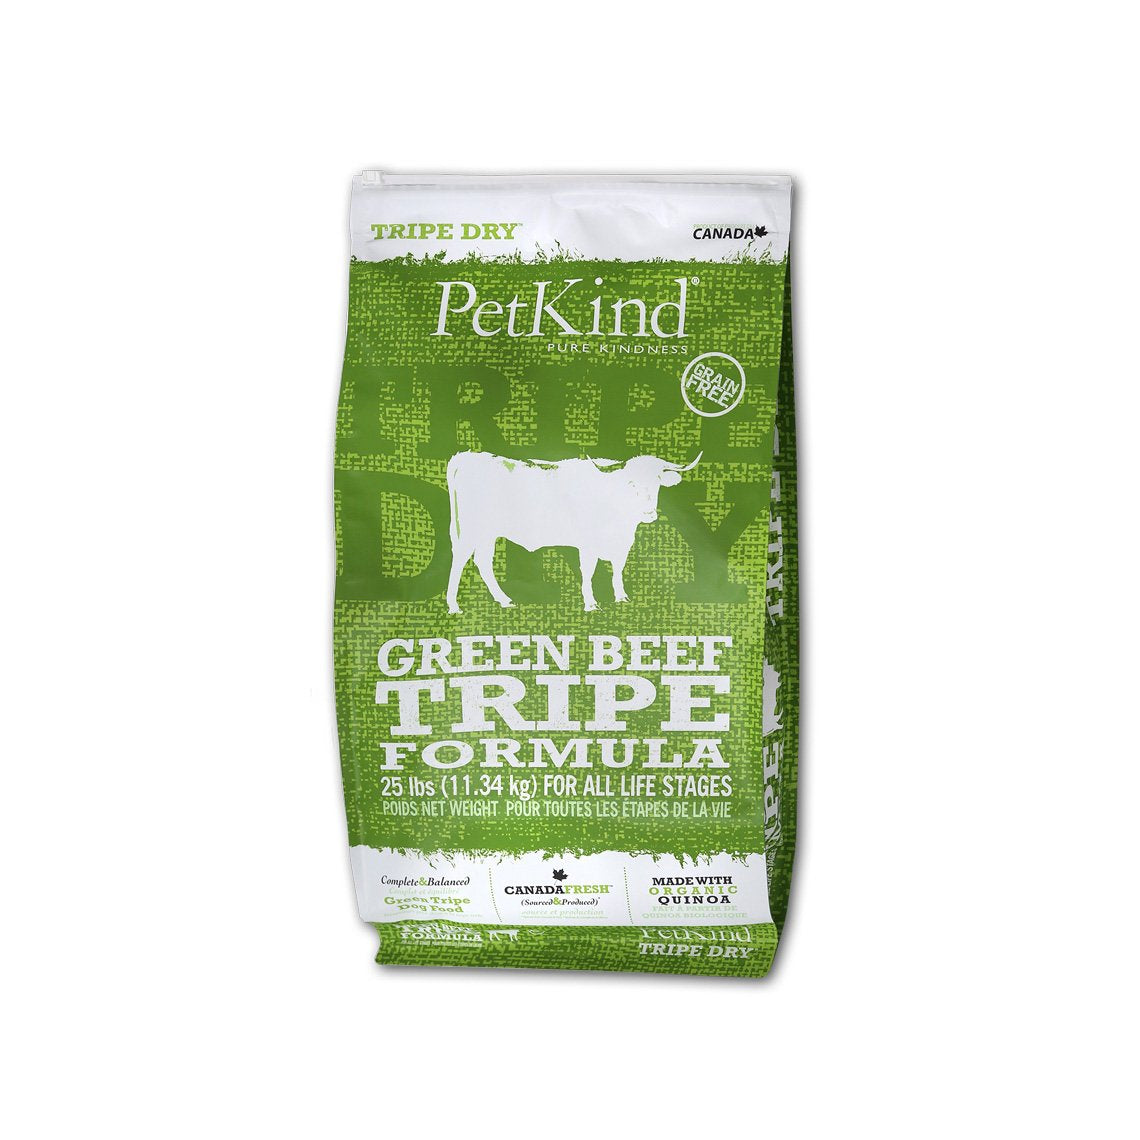 PetKind Grain-Free Dry Dog Food with Tripe